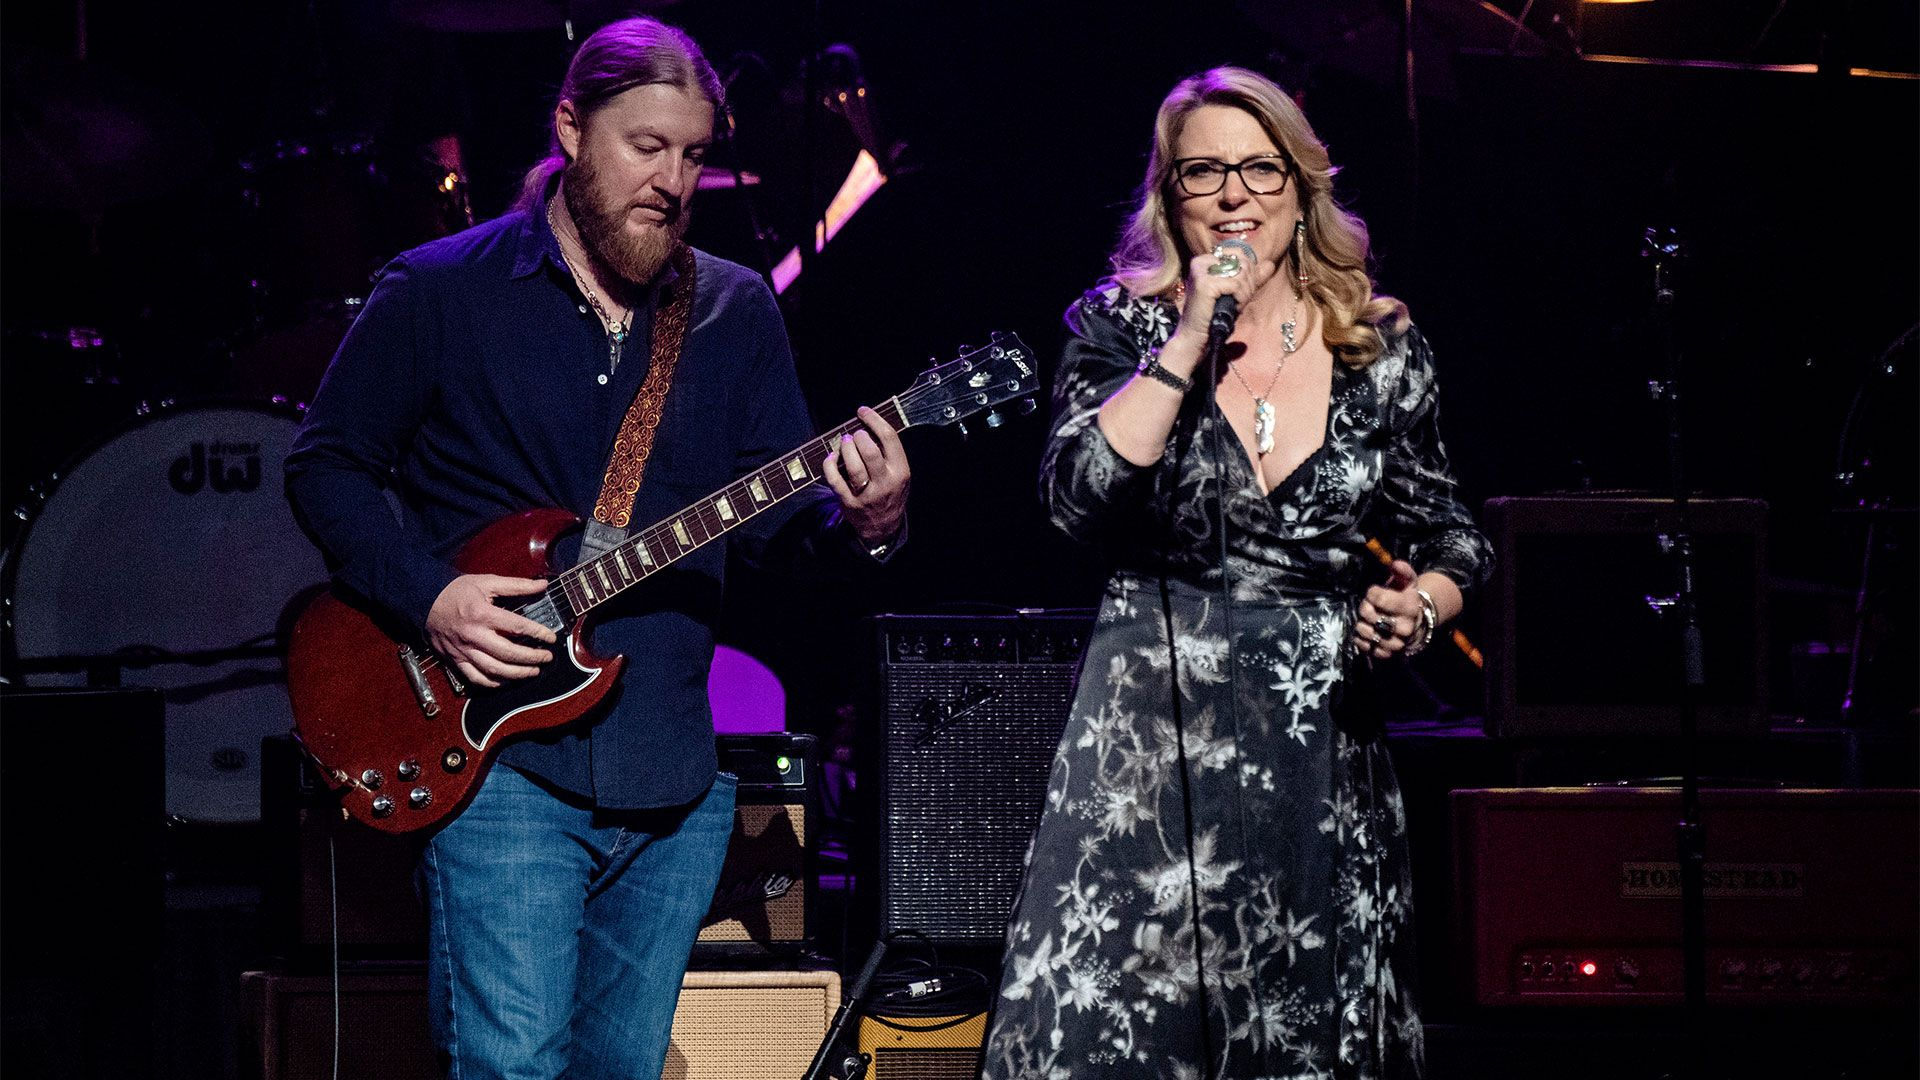 Mass. native Susan Tedeschi continues to pay salaries of band, road crew throughout pandemic